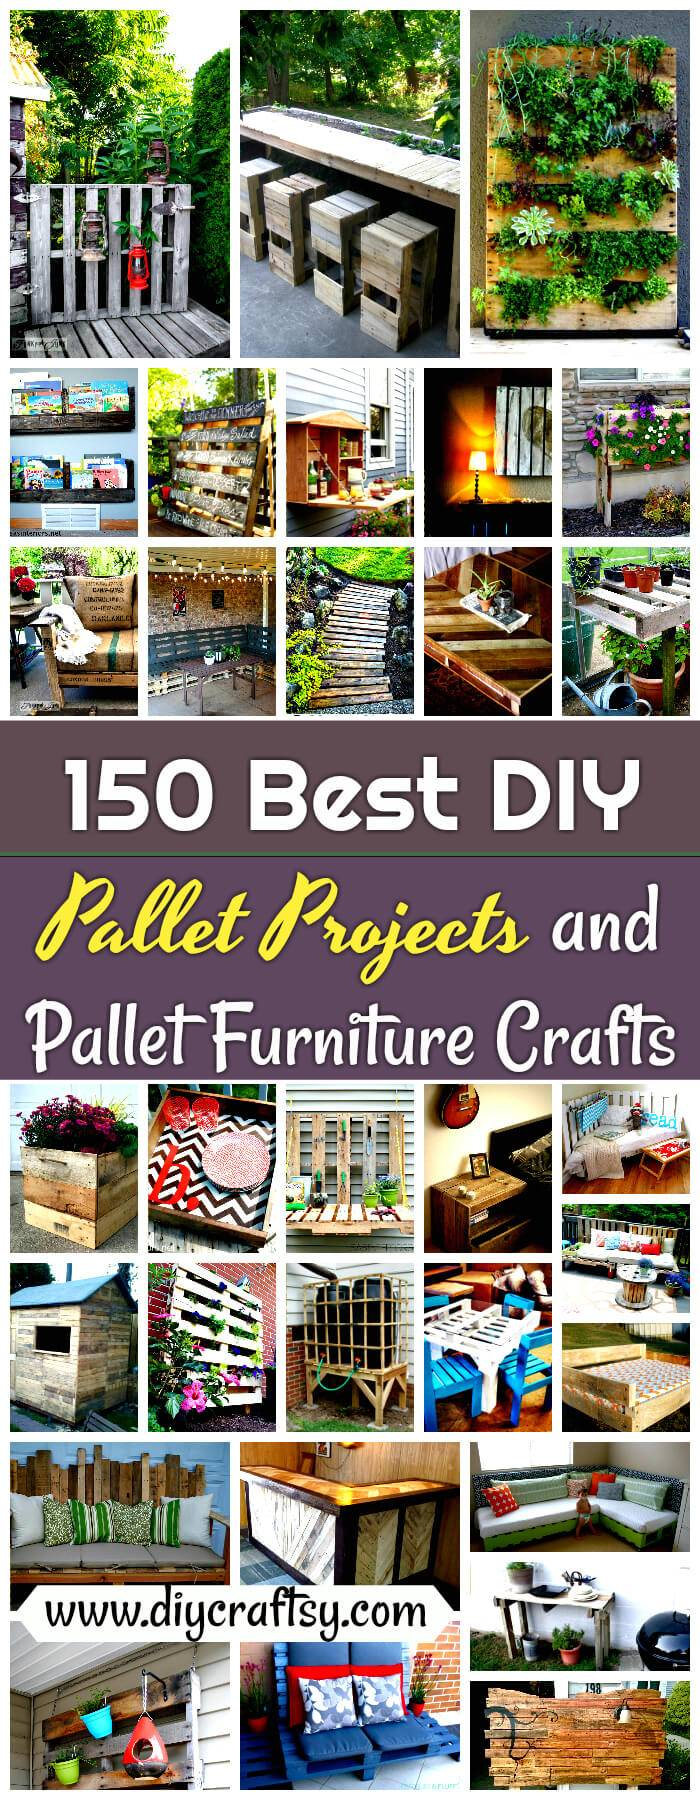 Pallet Projects and Pallet Furniture Crafts